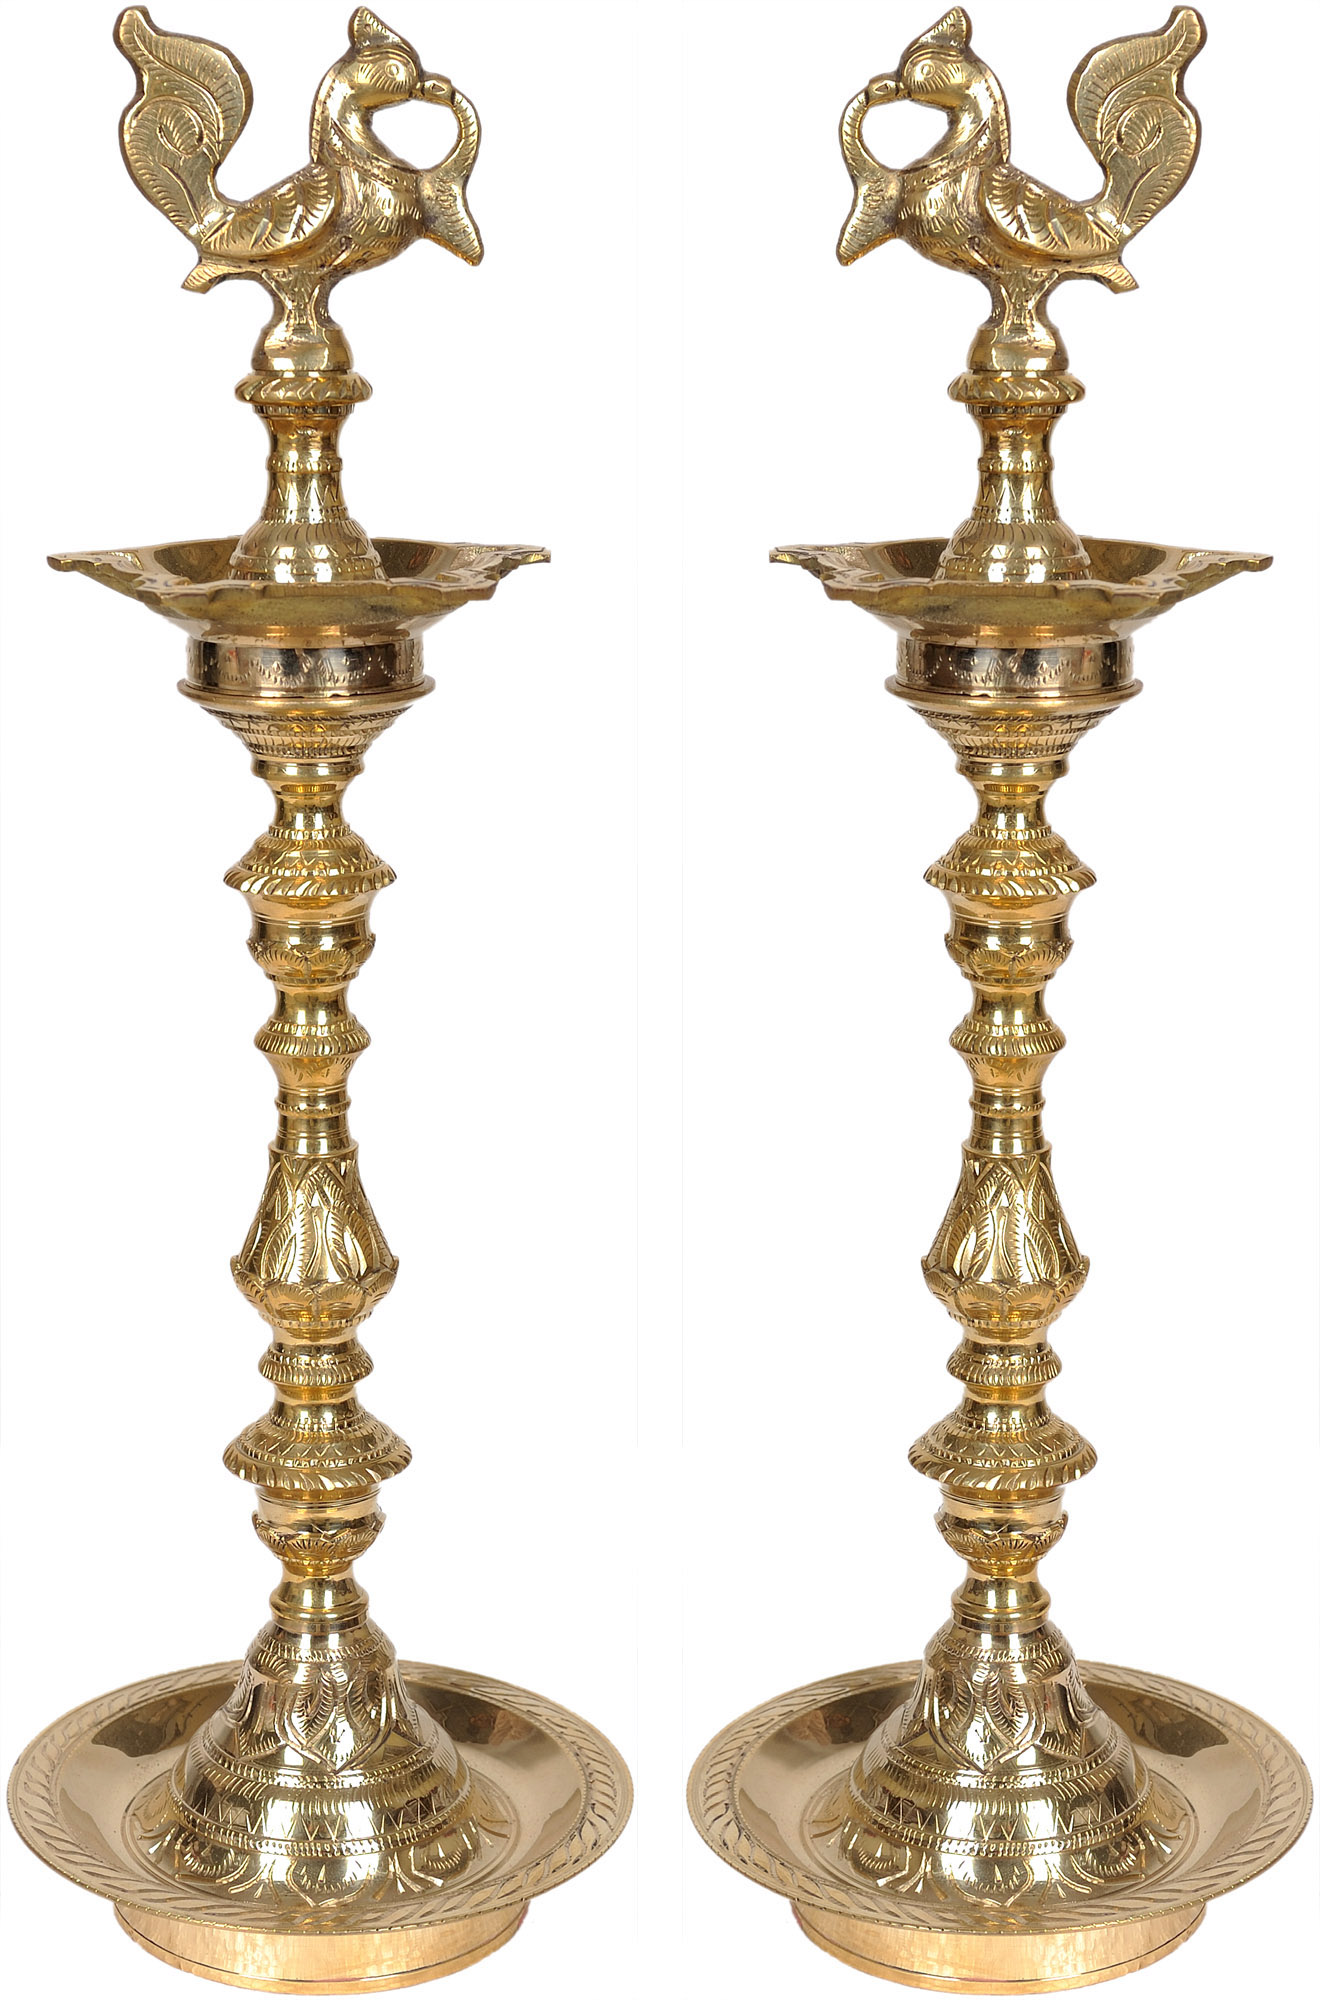 Indian Brass Lamps The Magnificence Of A Millennial